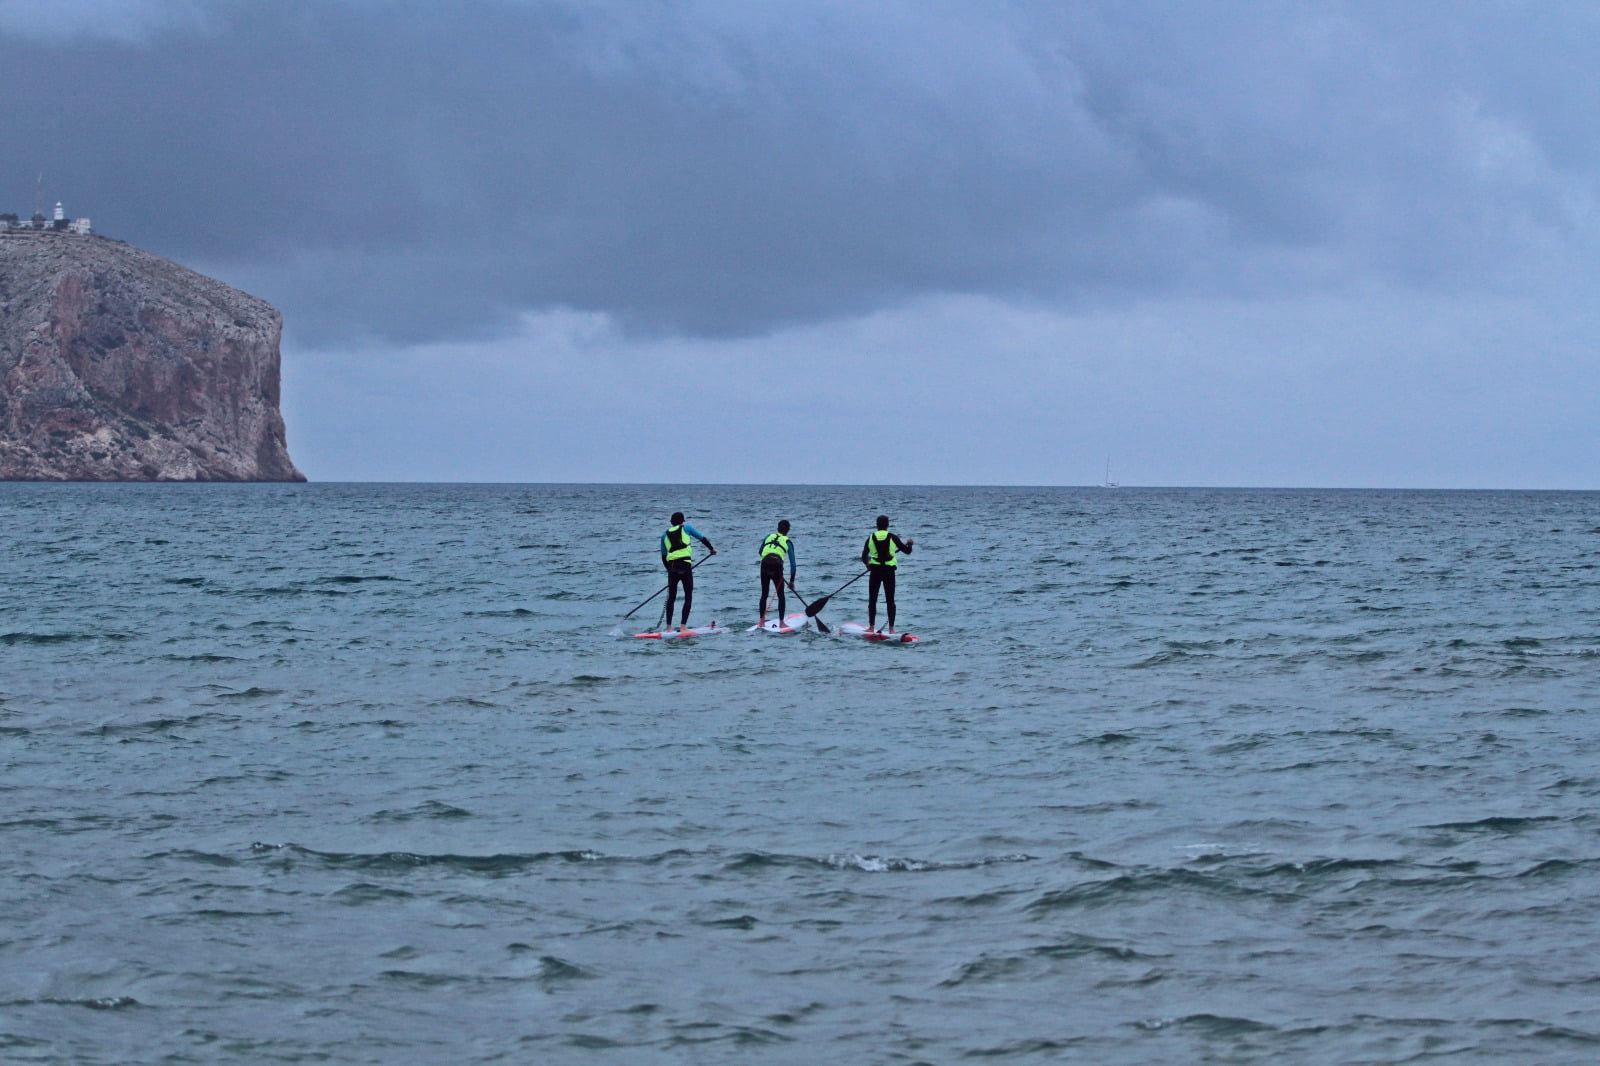 SUP rider on winter day, with thermal clothing, hydration and and bright colors